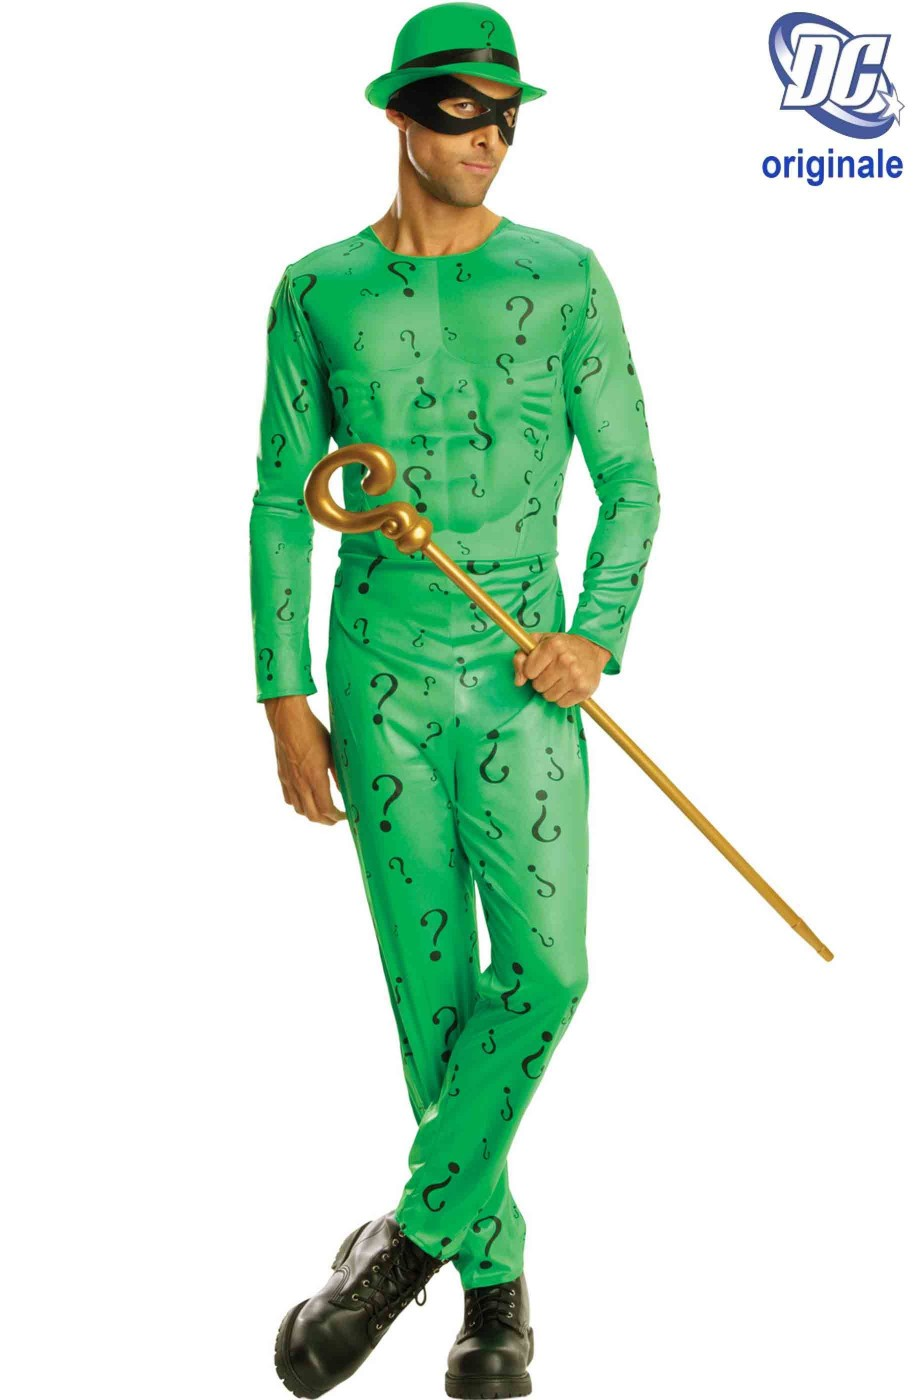 Costume L'Enigmista, The Riddler dalla serie Batman